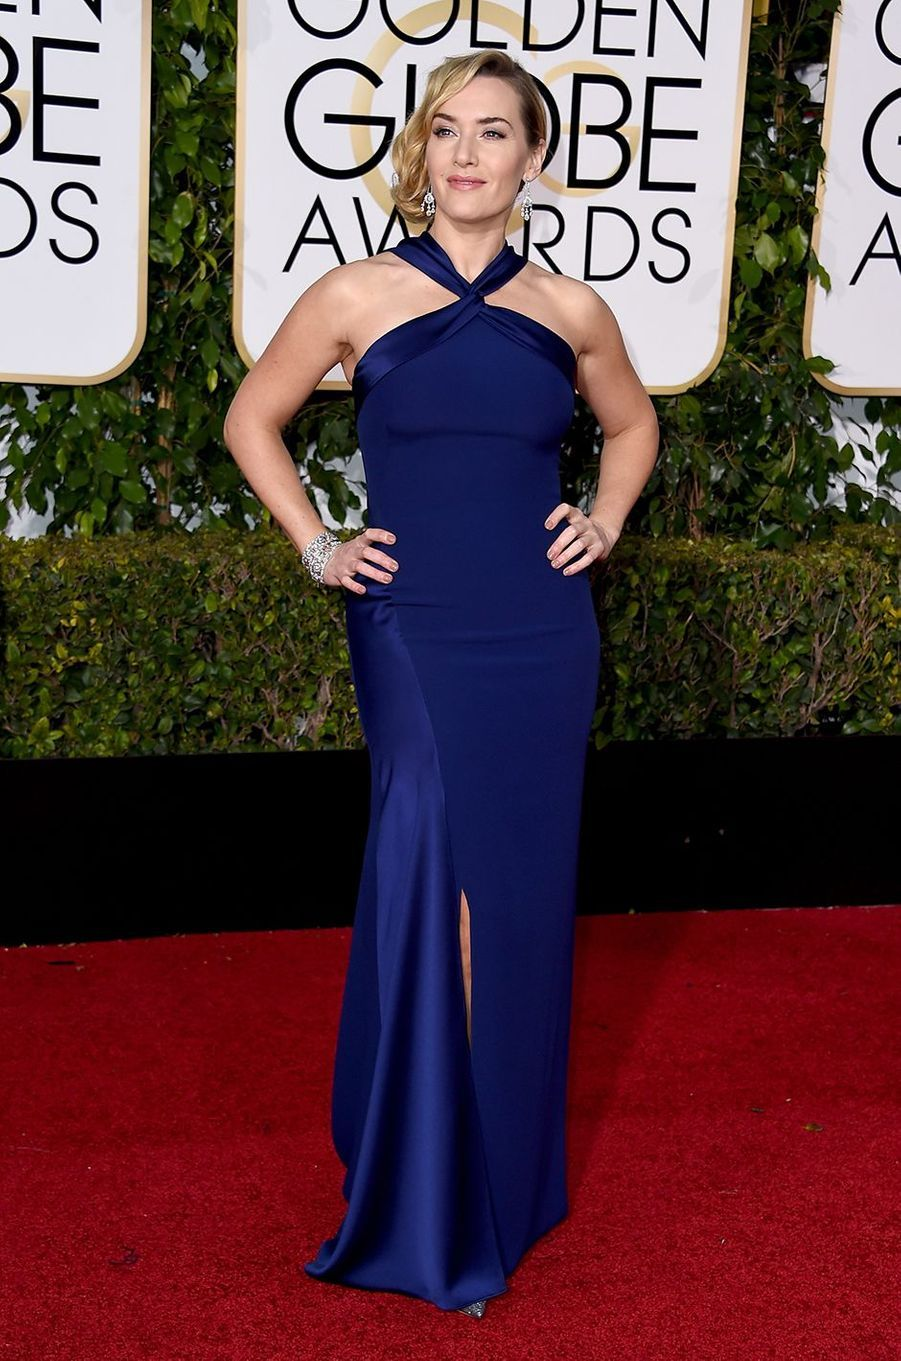 Kate Winslet aux Golden Globes à Los Angeles en janvier 2016